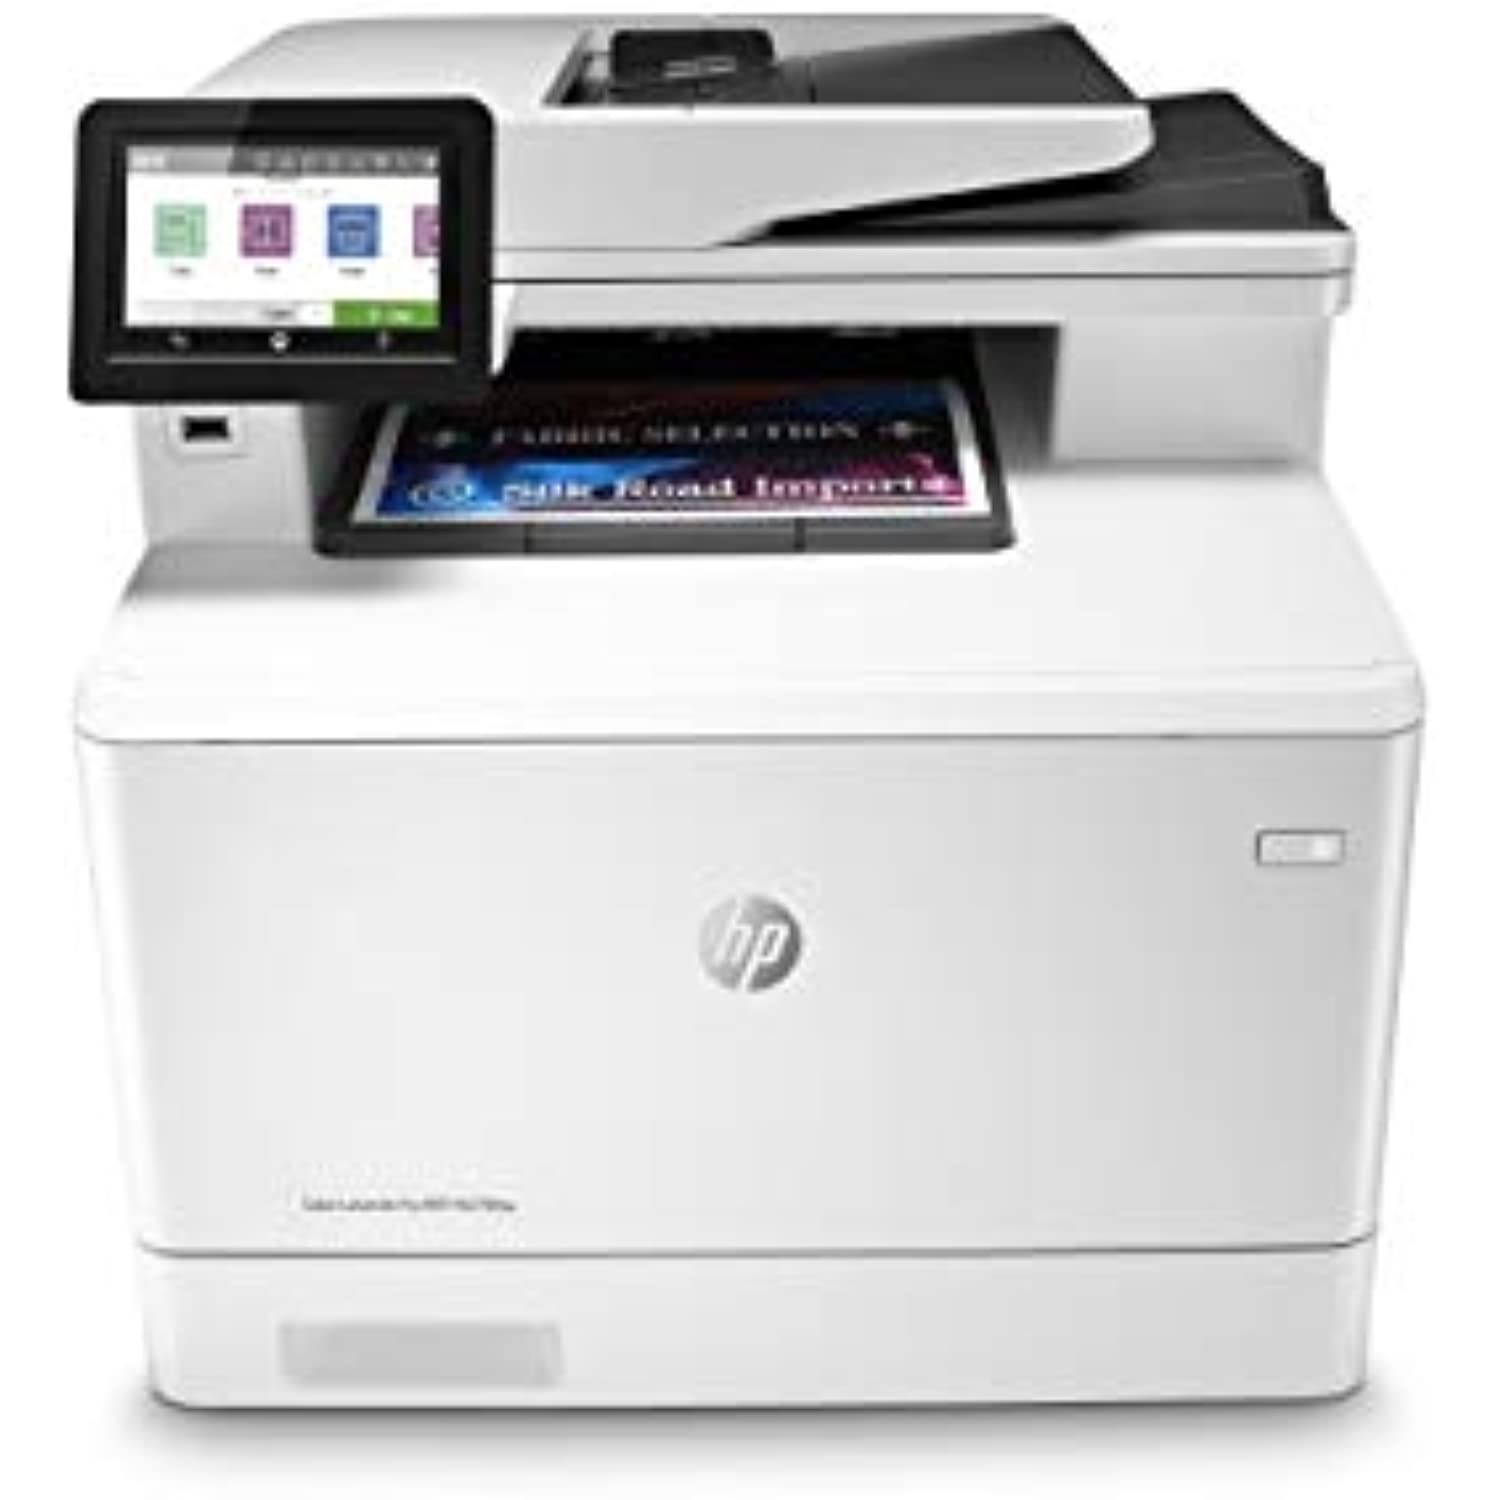 HP Color LaserJet Pro Multifunction M479fdw Wireless Laser Printer with One-Year, Next-Business Day, Onsite Warranty (NO INK INCLUDED)